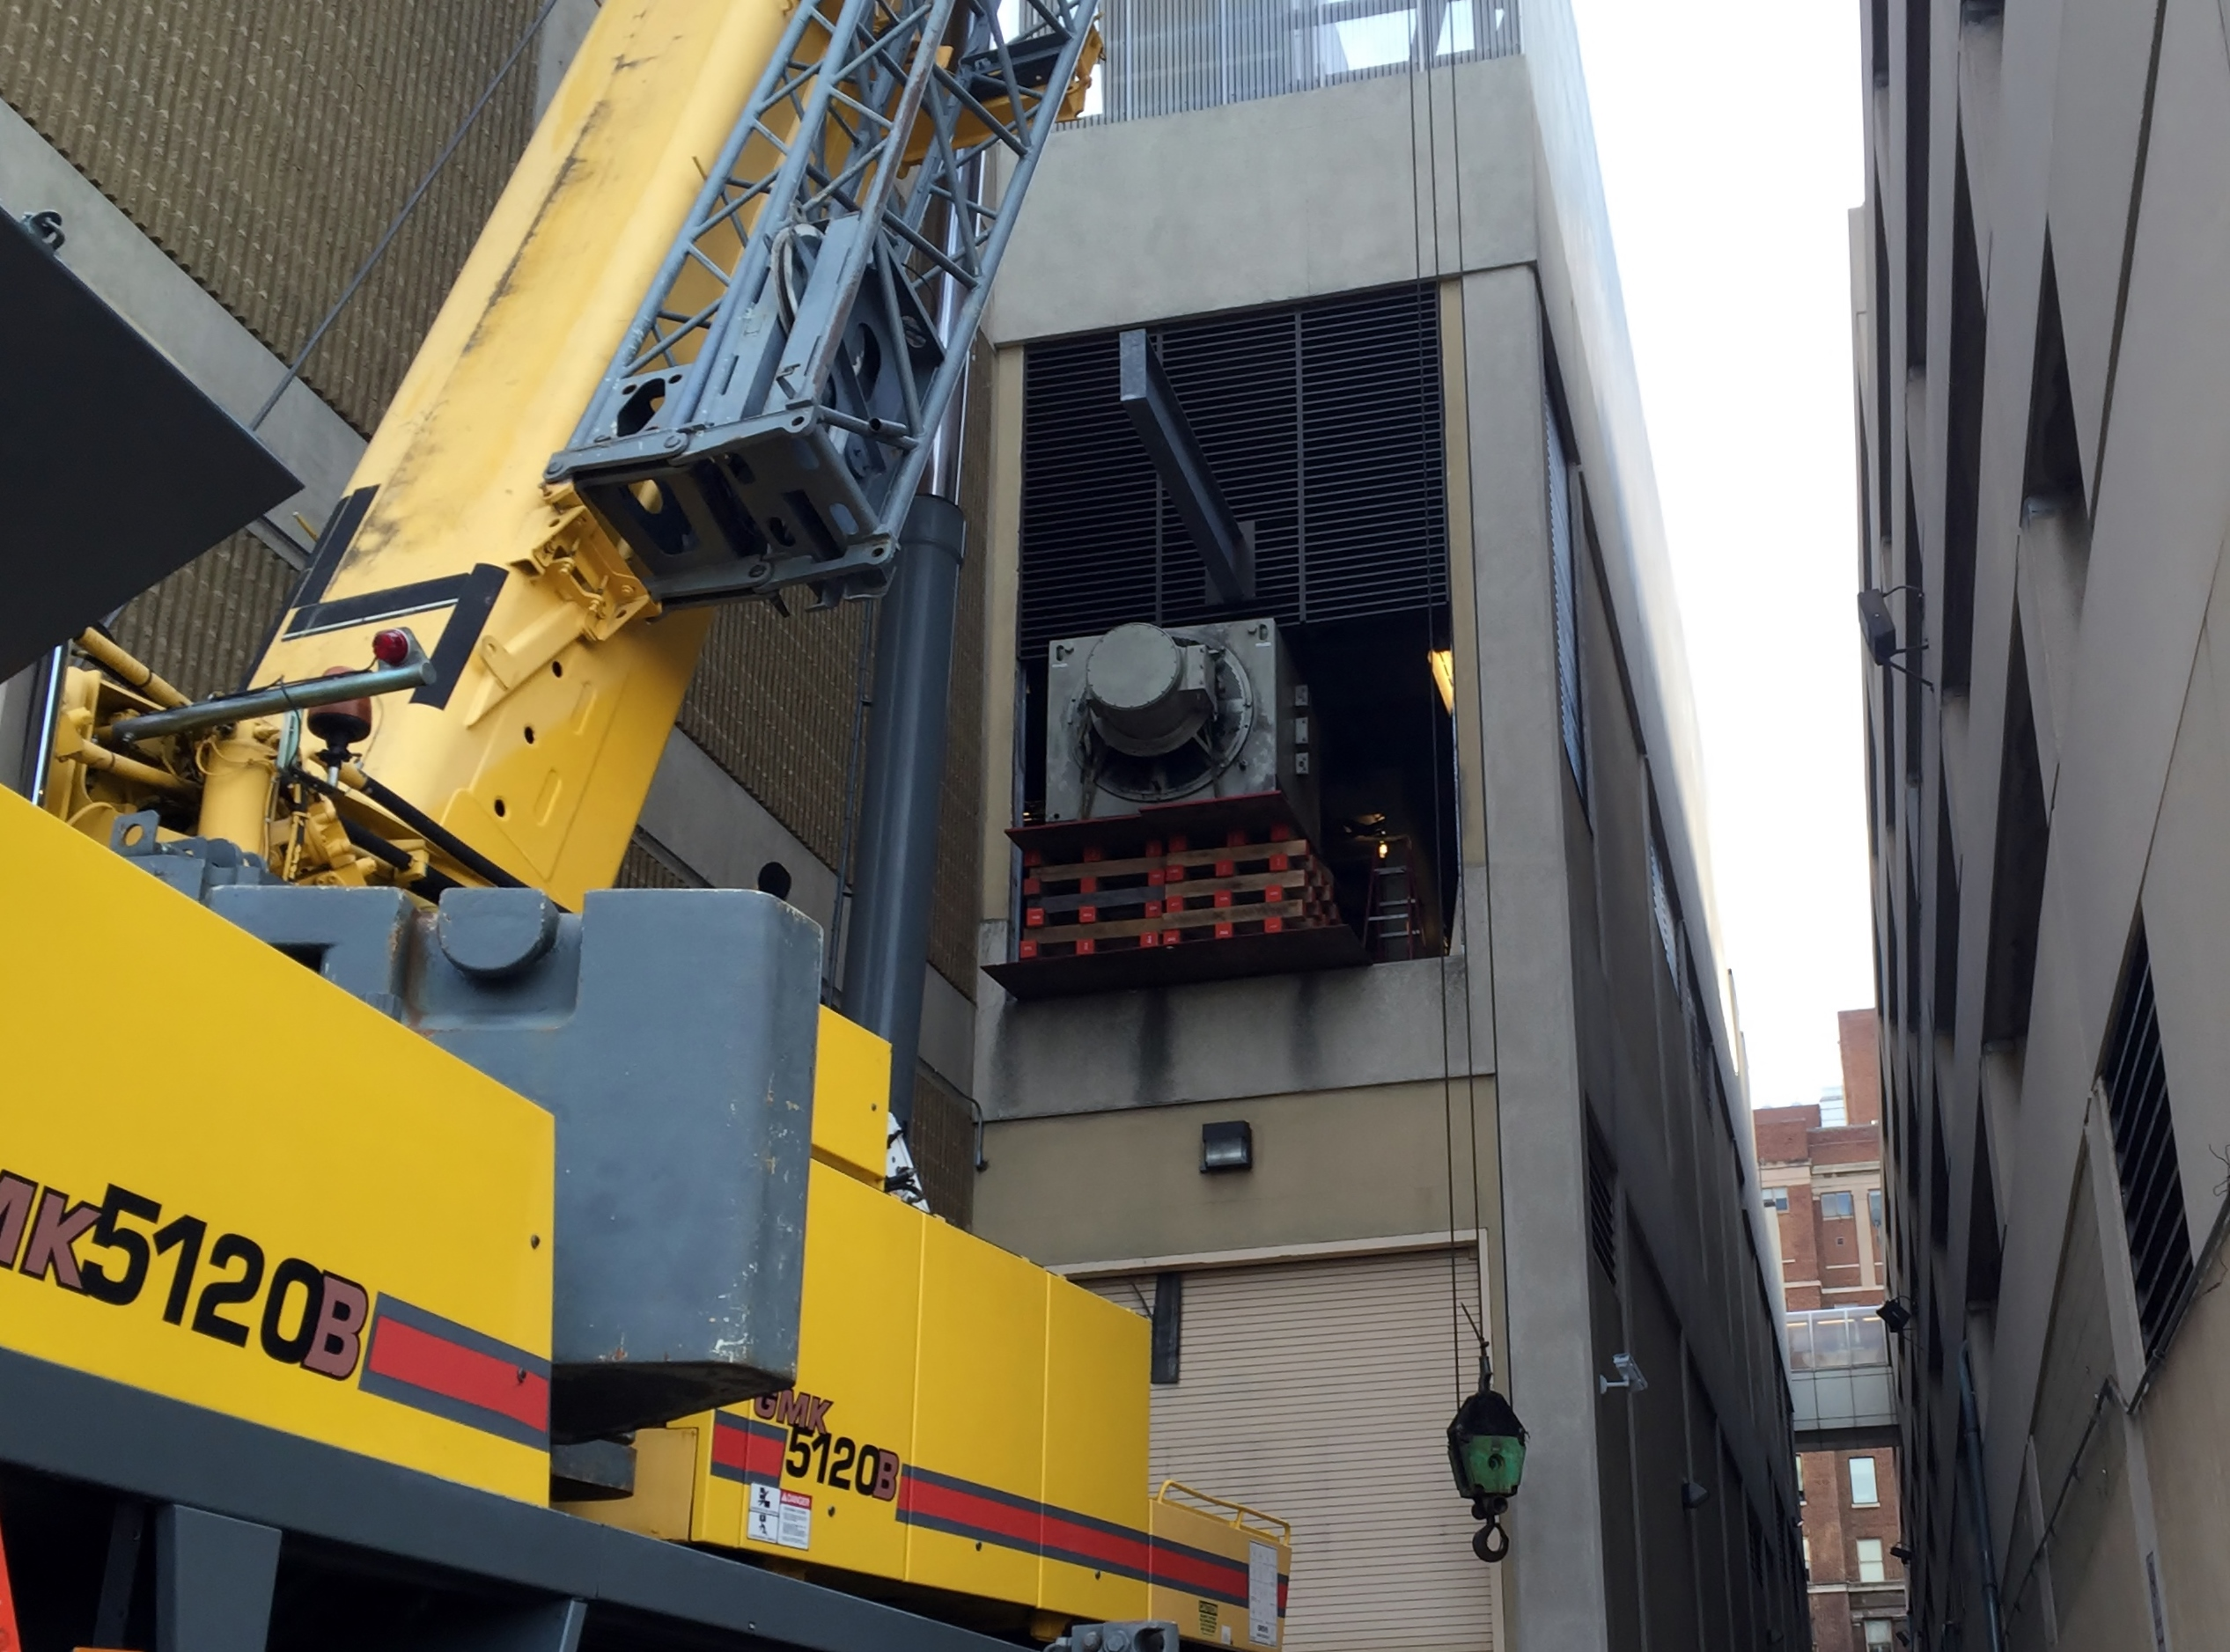 Removal of generator